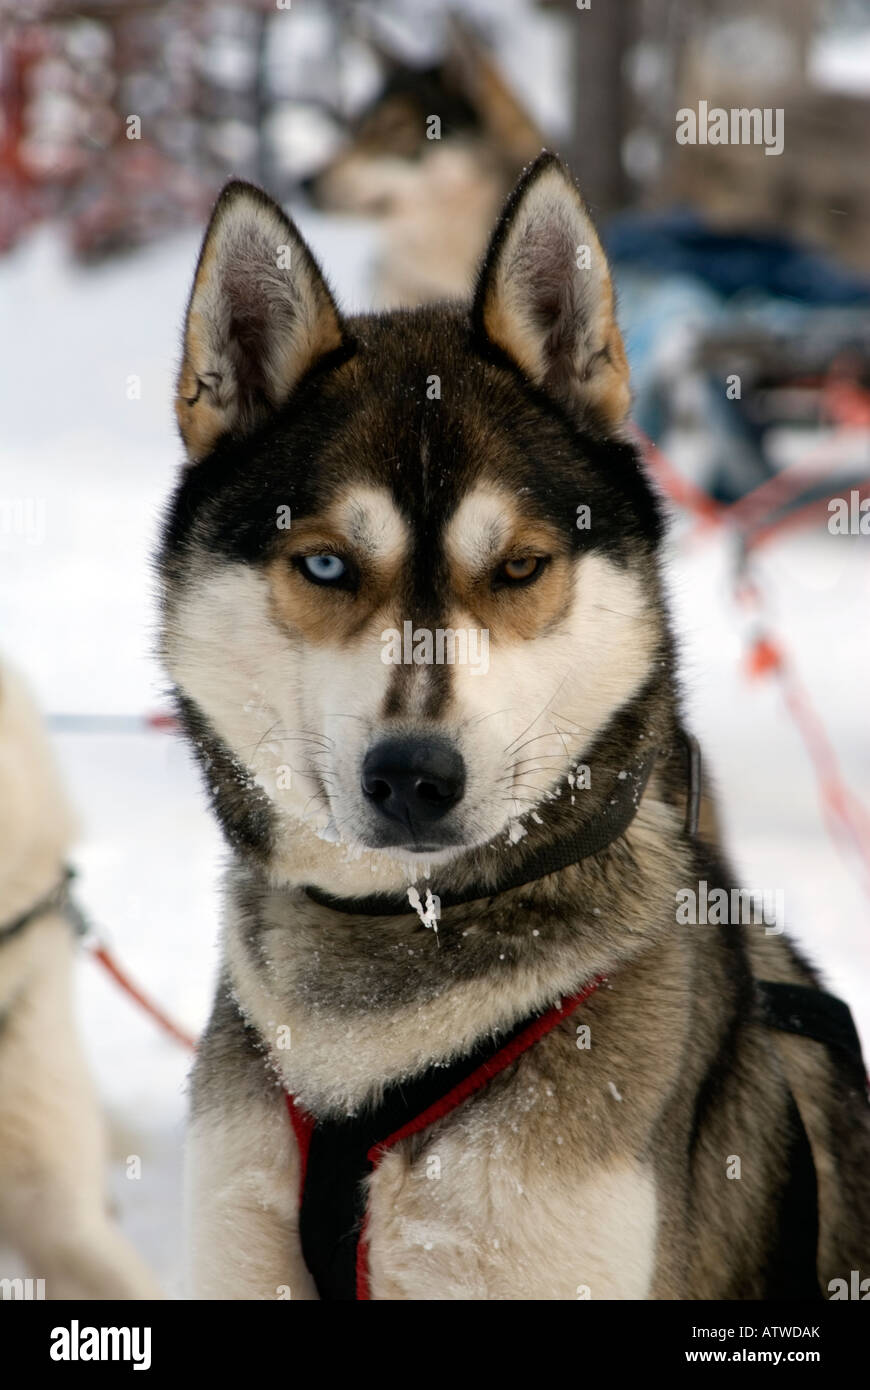 Team of husky dogs ready to pull a musher and sledge beond the artic circle Lapland Finland - Stock Image